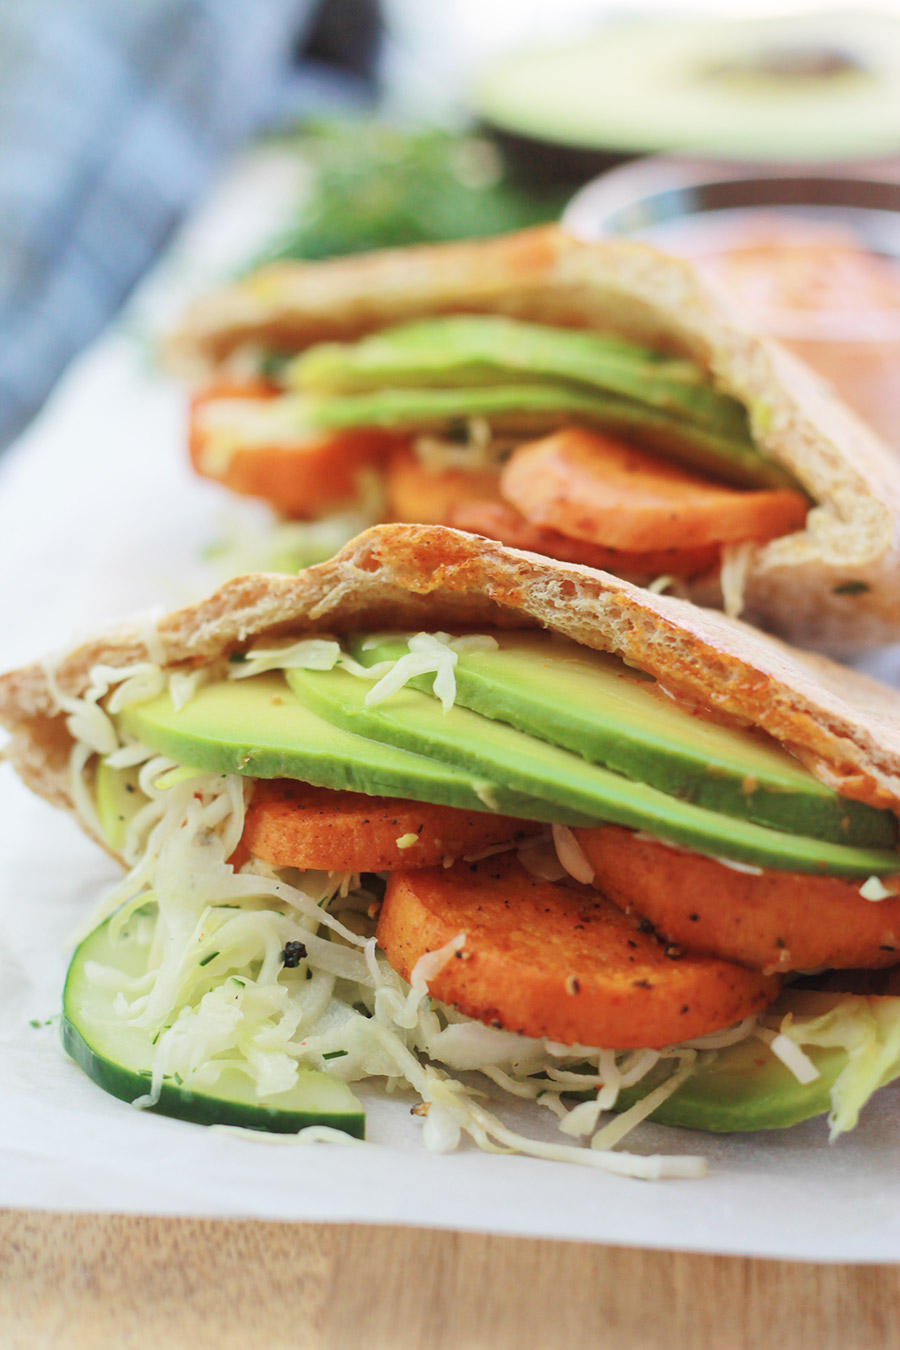 Close-up of pita pocket stuffed with spicy roasted sweet potato slices, cucumber slaw and avocado slices, with half of an avocado slice and sandwich spread in background.